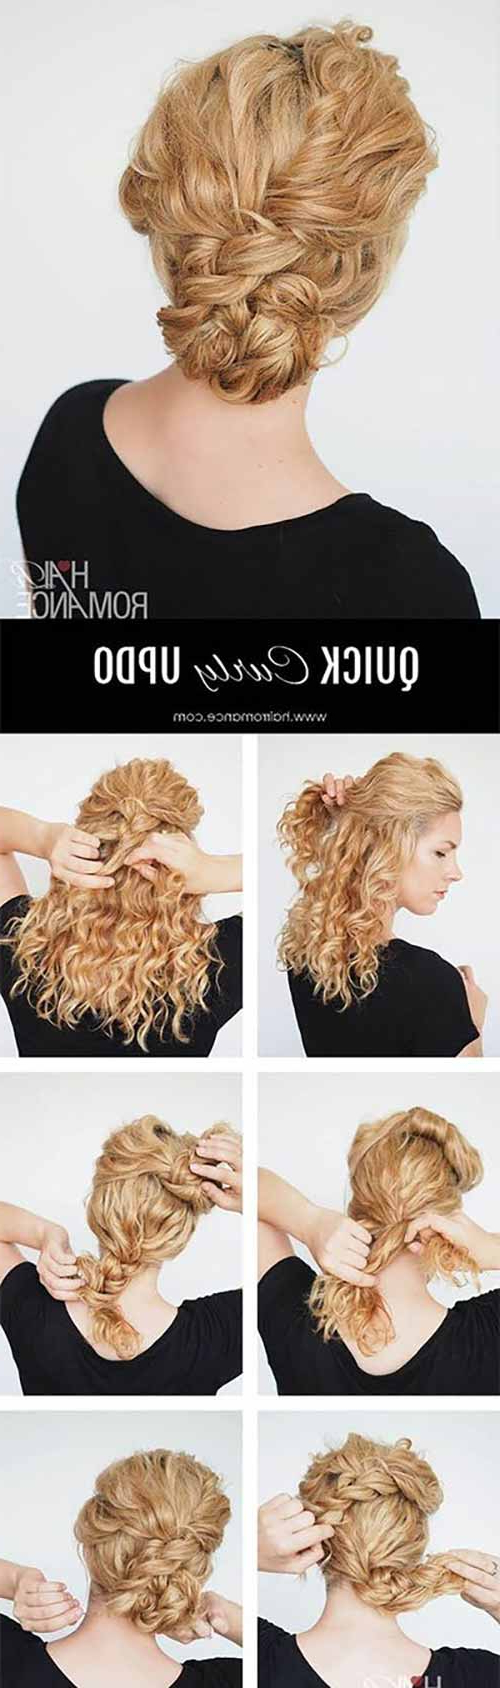 20 Incredibly Stunning Diy Updos For Curly Hair Pertaining To Most Current Elegant Messy Updo Hairstyles On Curly Hair (View 2 of 20)